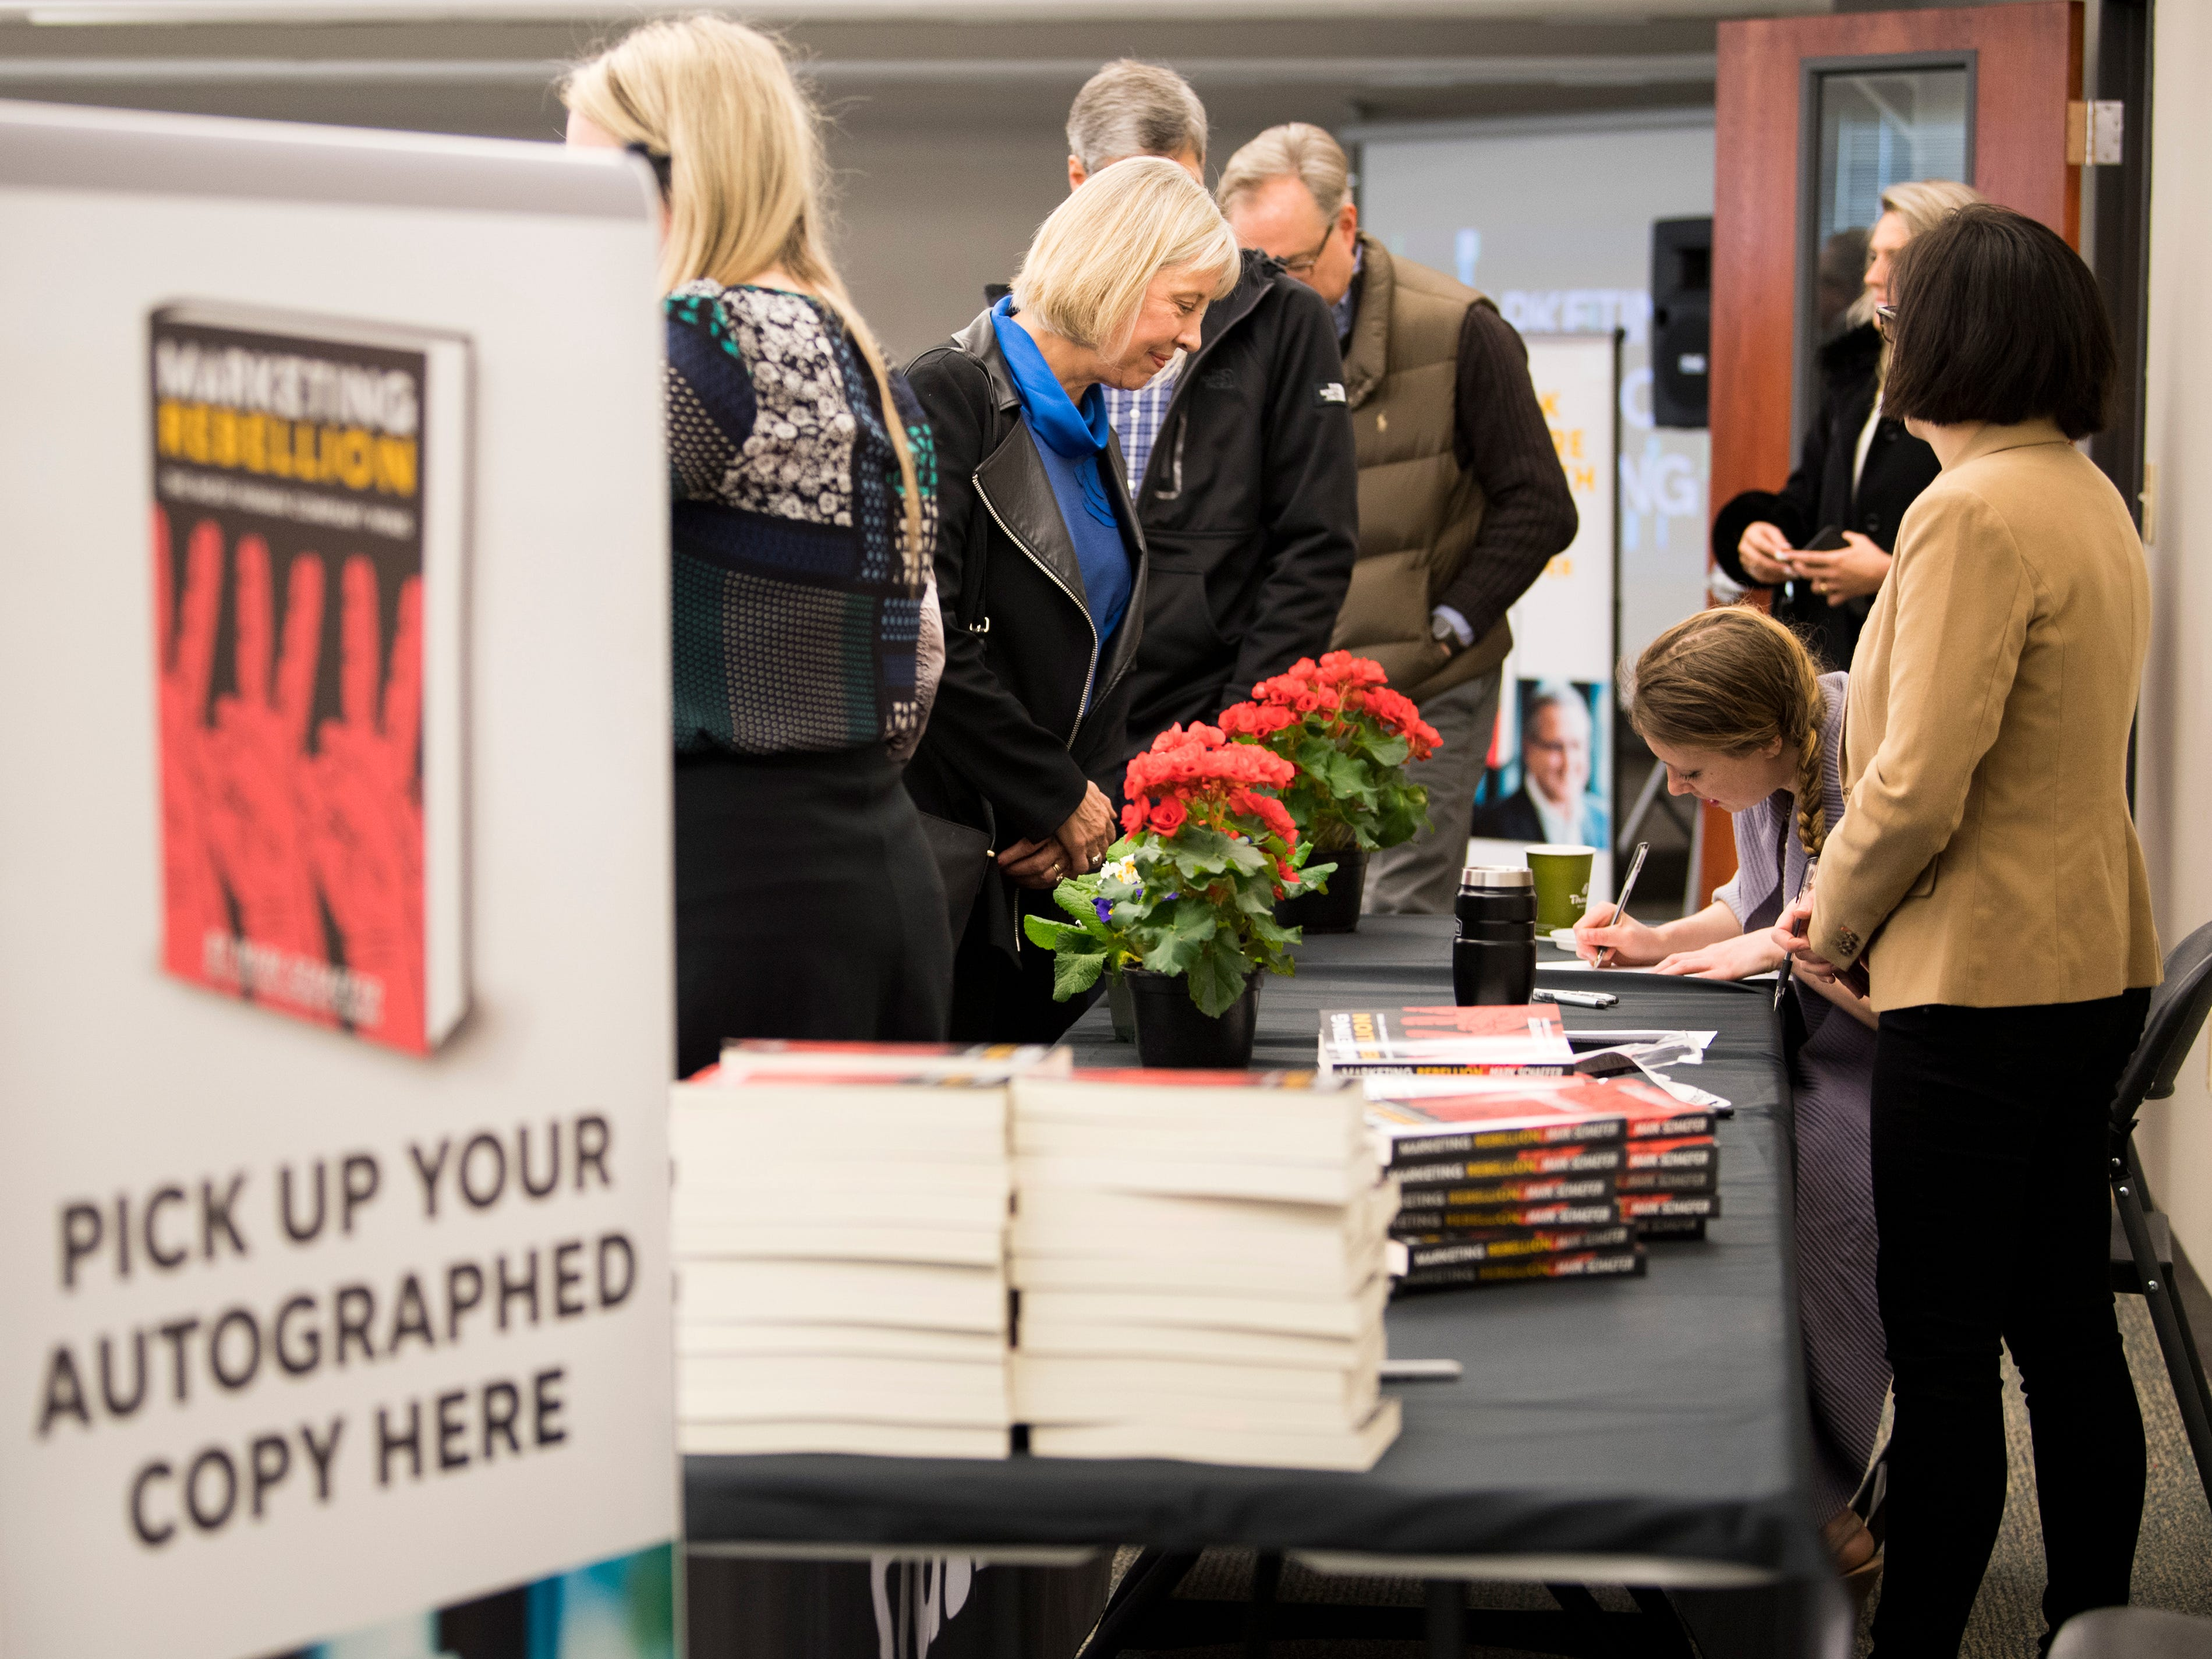 Scenes from knox.biz's Mark Schaefer book release event held at the Knoxville News Sentinel on Wednesday, February 13, 2019.